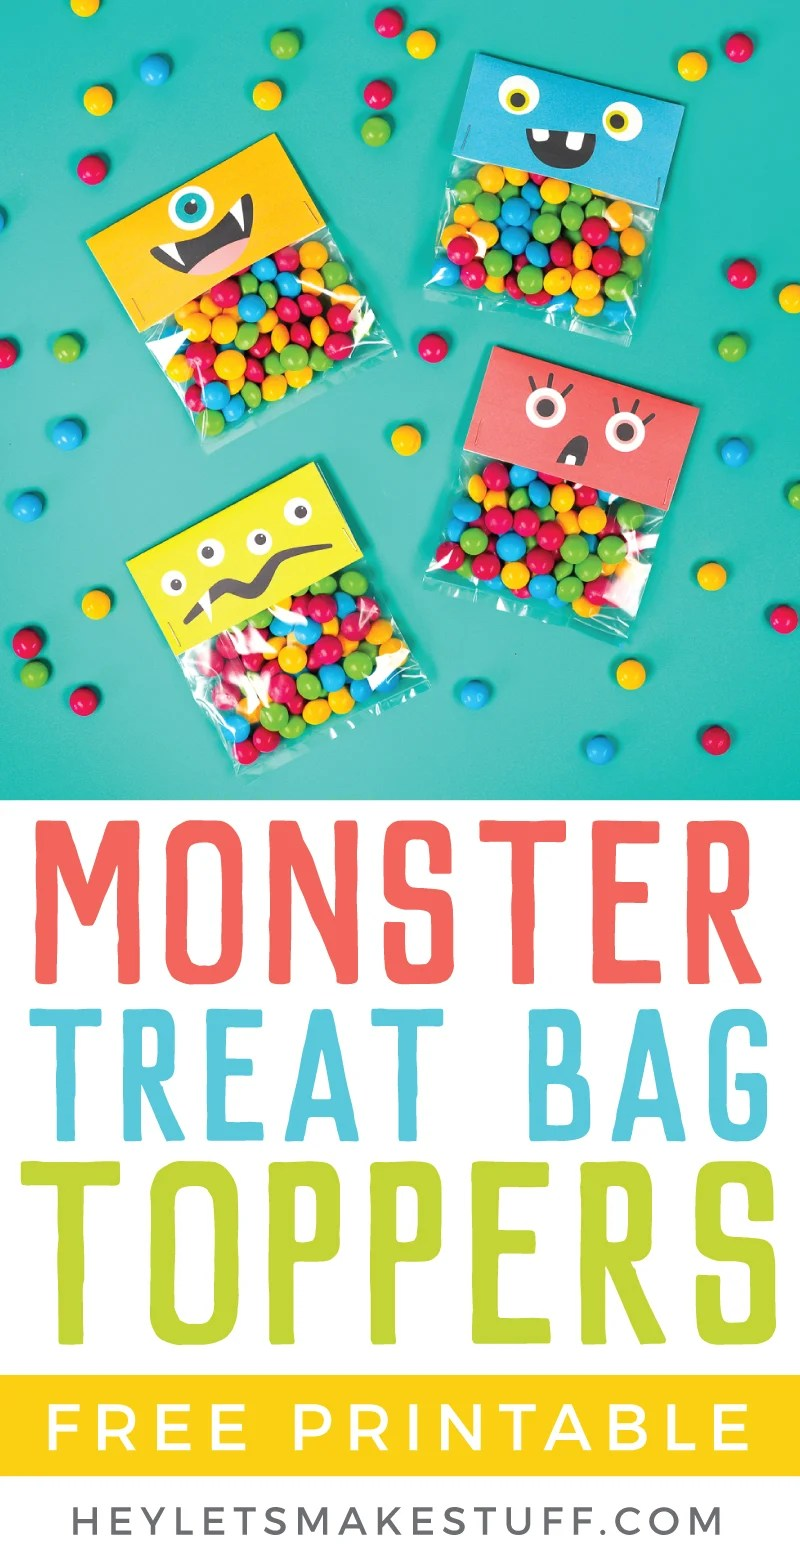 These monster printable halloween treat bags are a cute non-scary Halloween idea, plus they can be used for all sorts of monster parties throughout the year! via @heyletsmakestuf